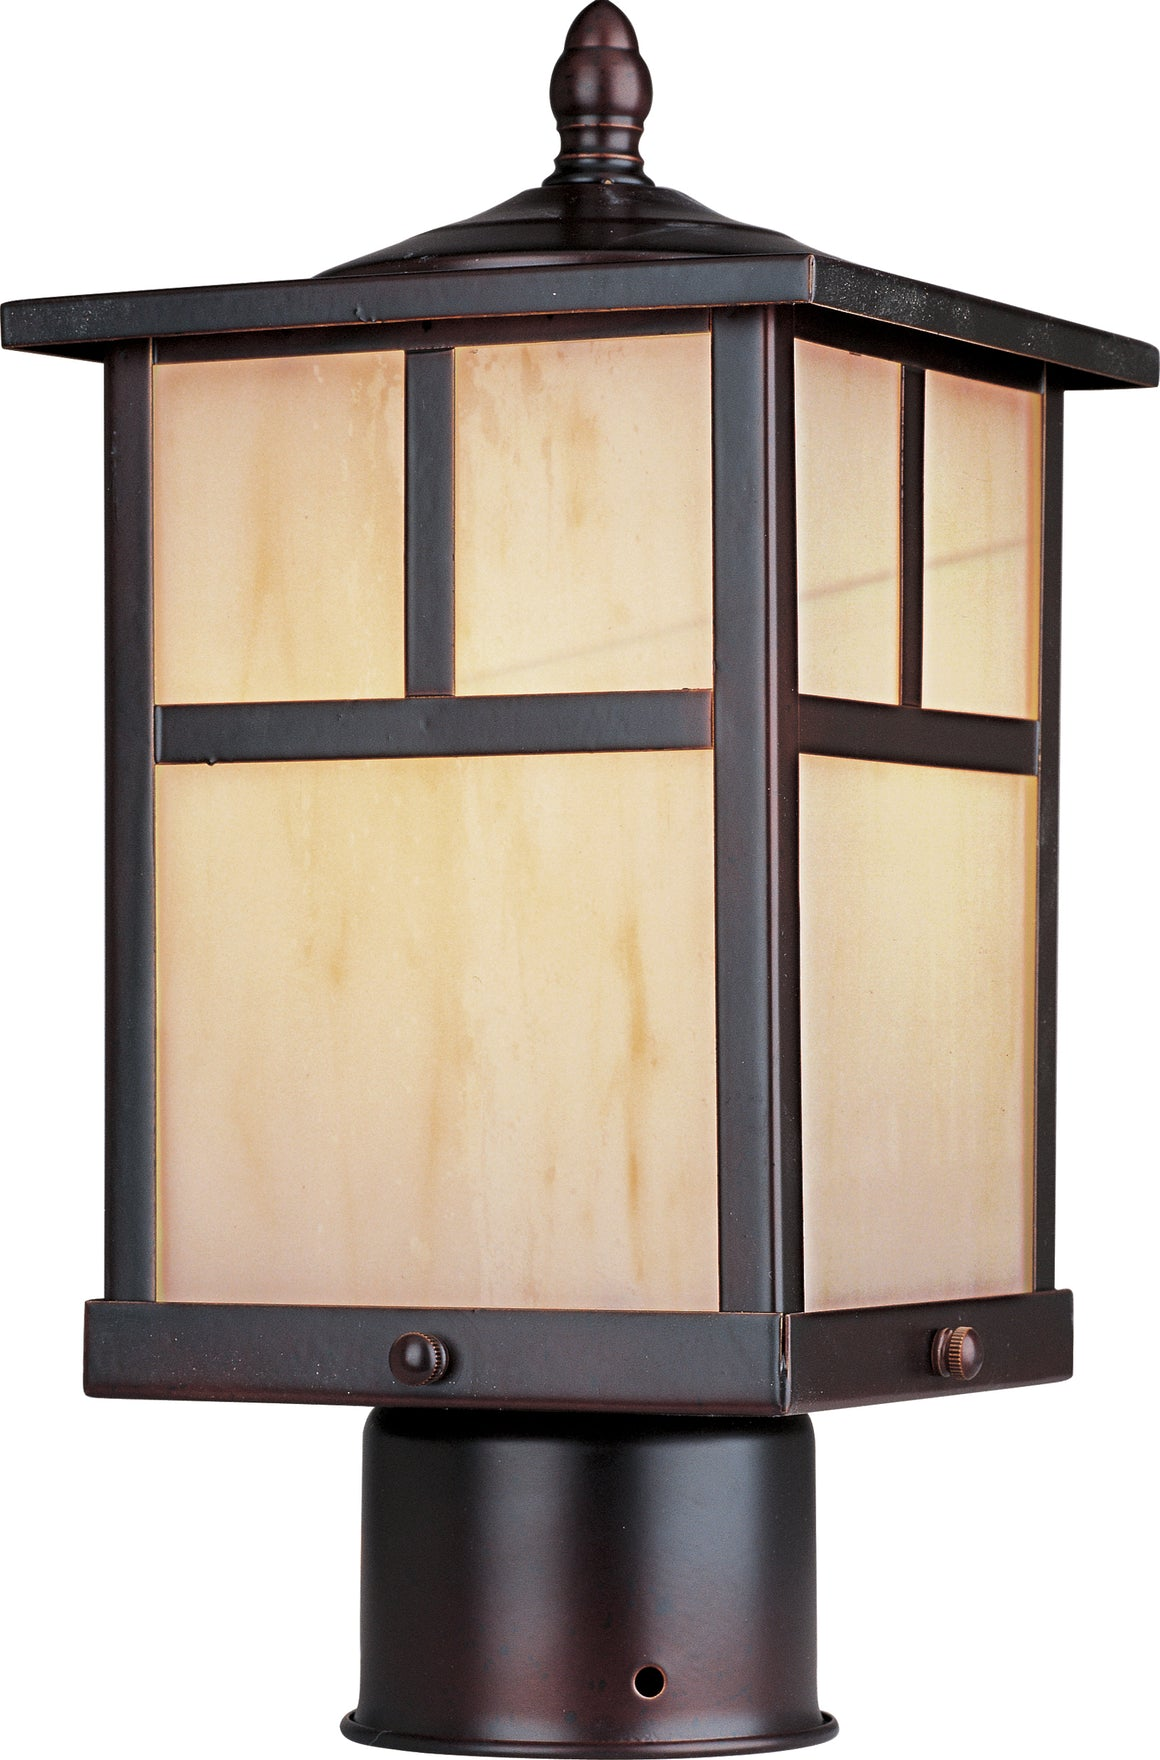 Coldwater EE 1-Light Outdoor Pole/Post Lantern